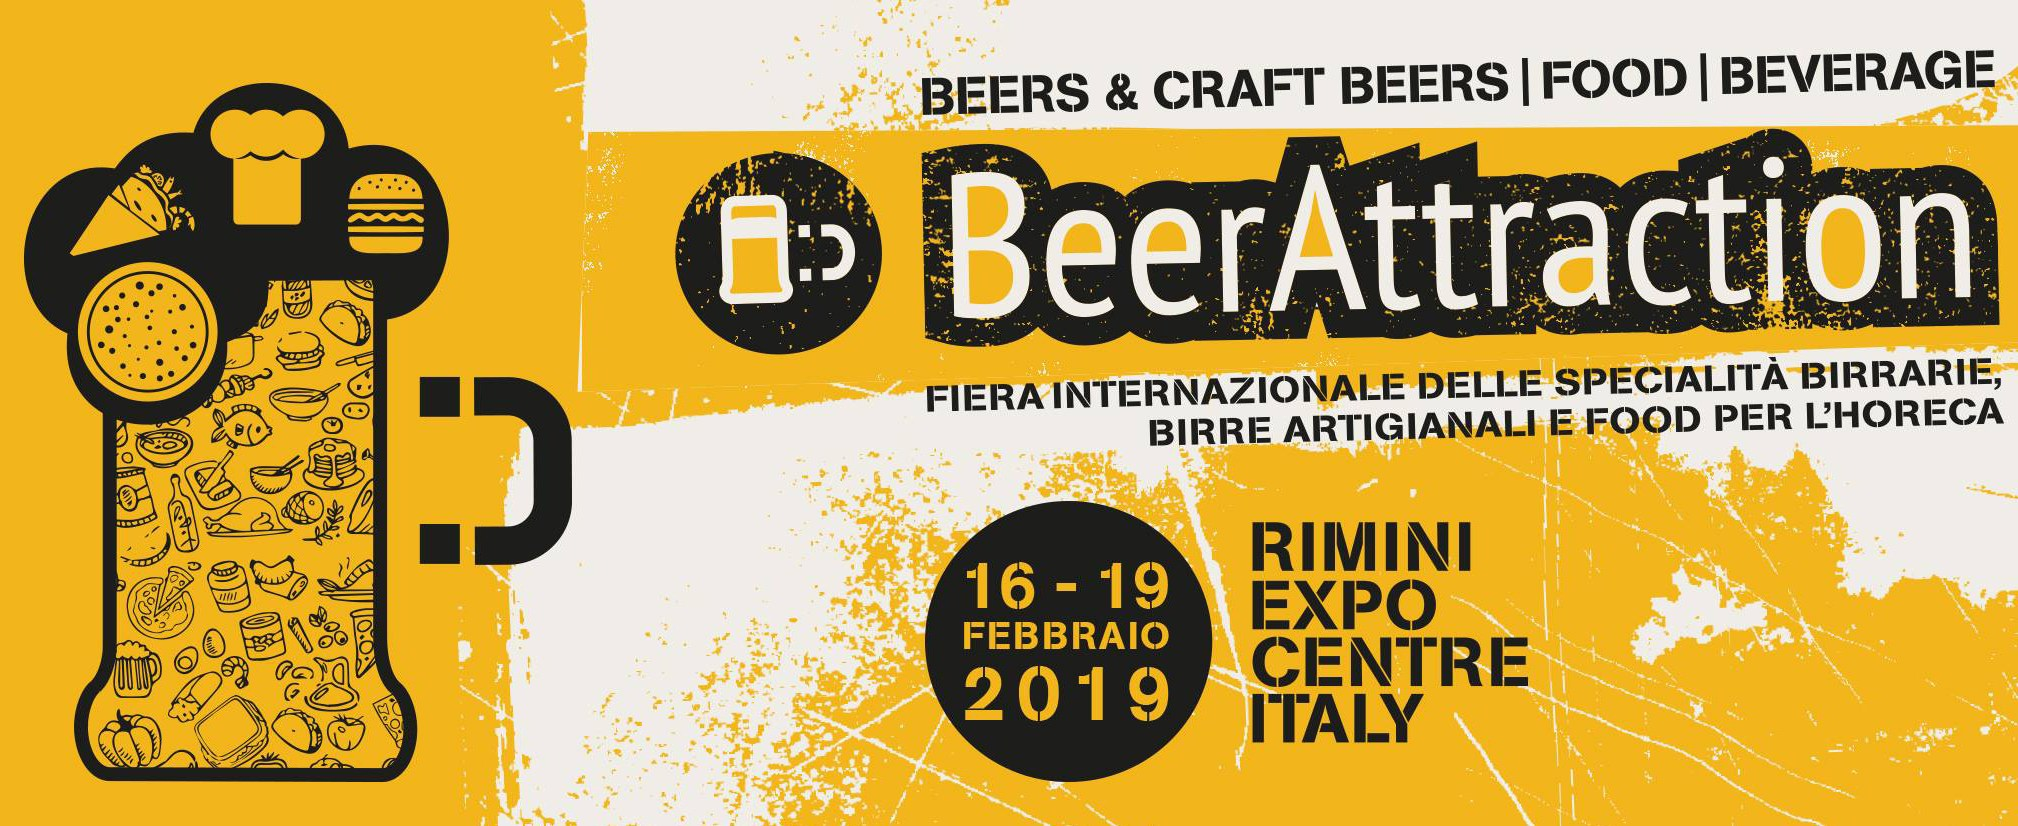 Beer Attraction 2019: premiati Bevande Cuni e CR/AK